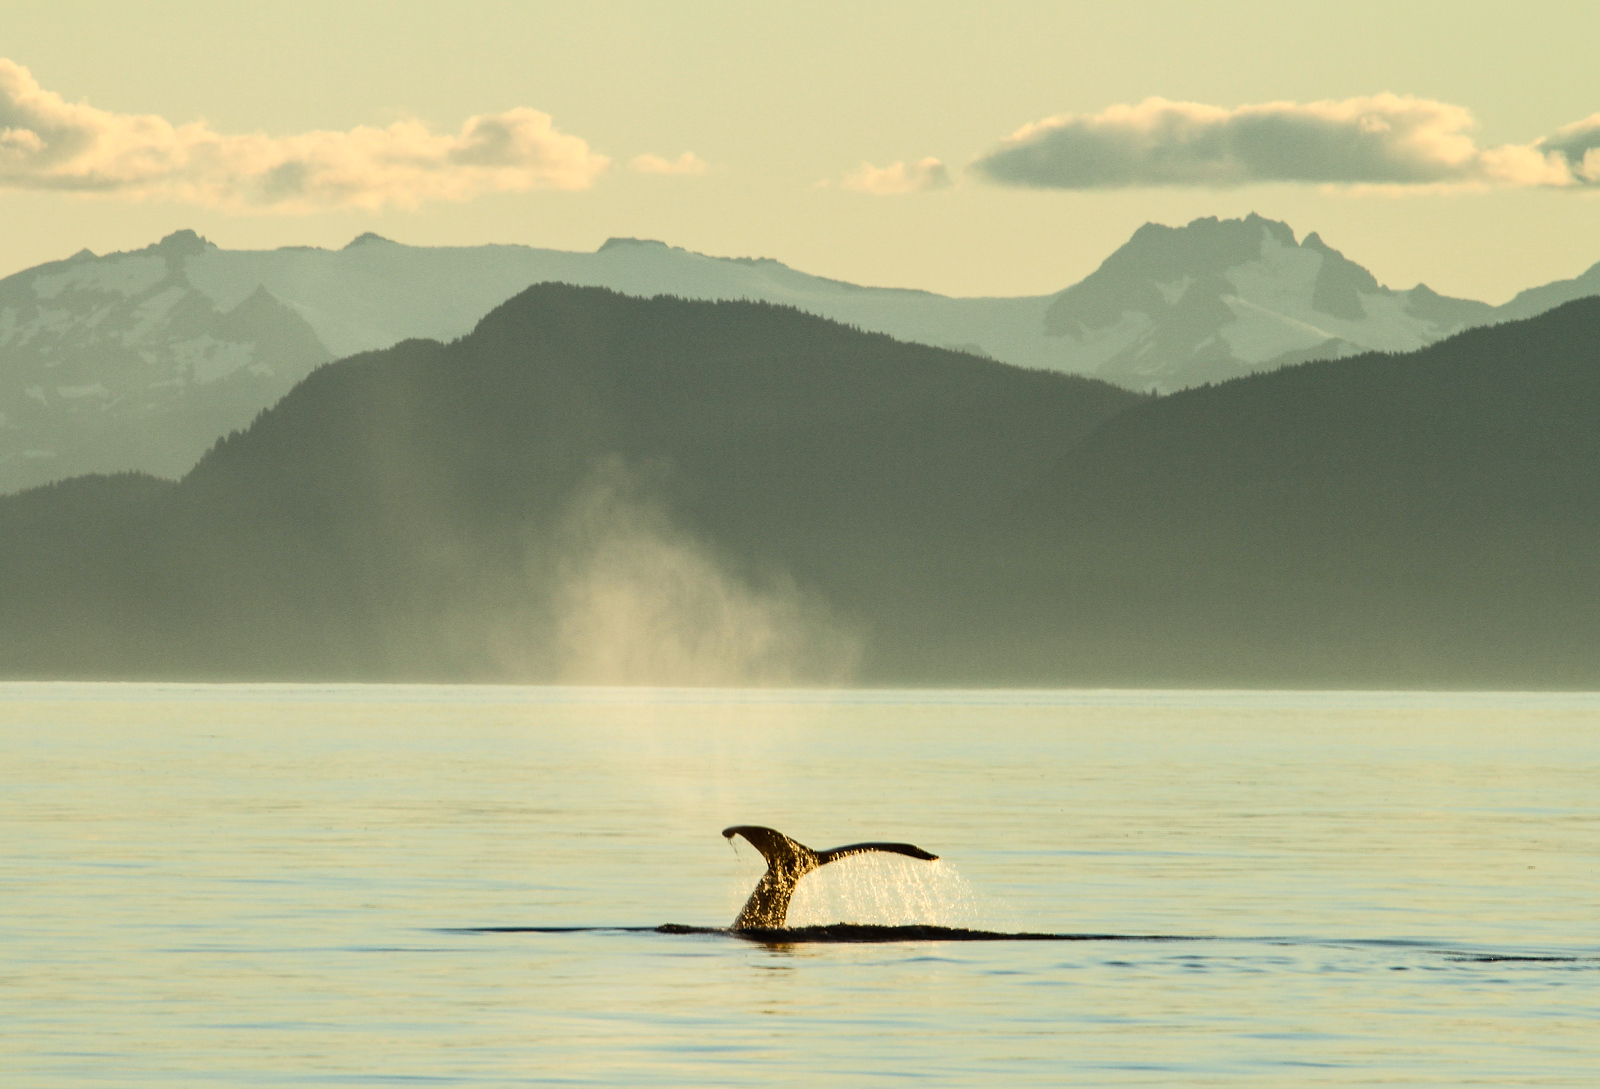 A whale flips his tail on an Alaska cruise. It's just one of the sights you'll see cruising to Alaska.